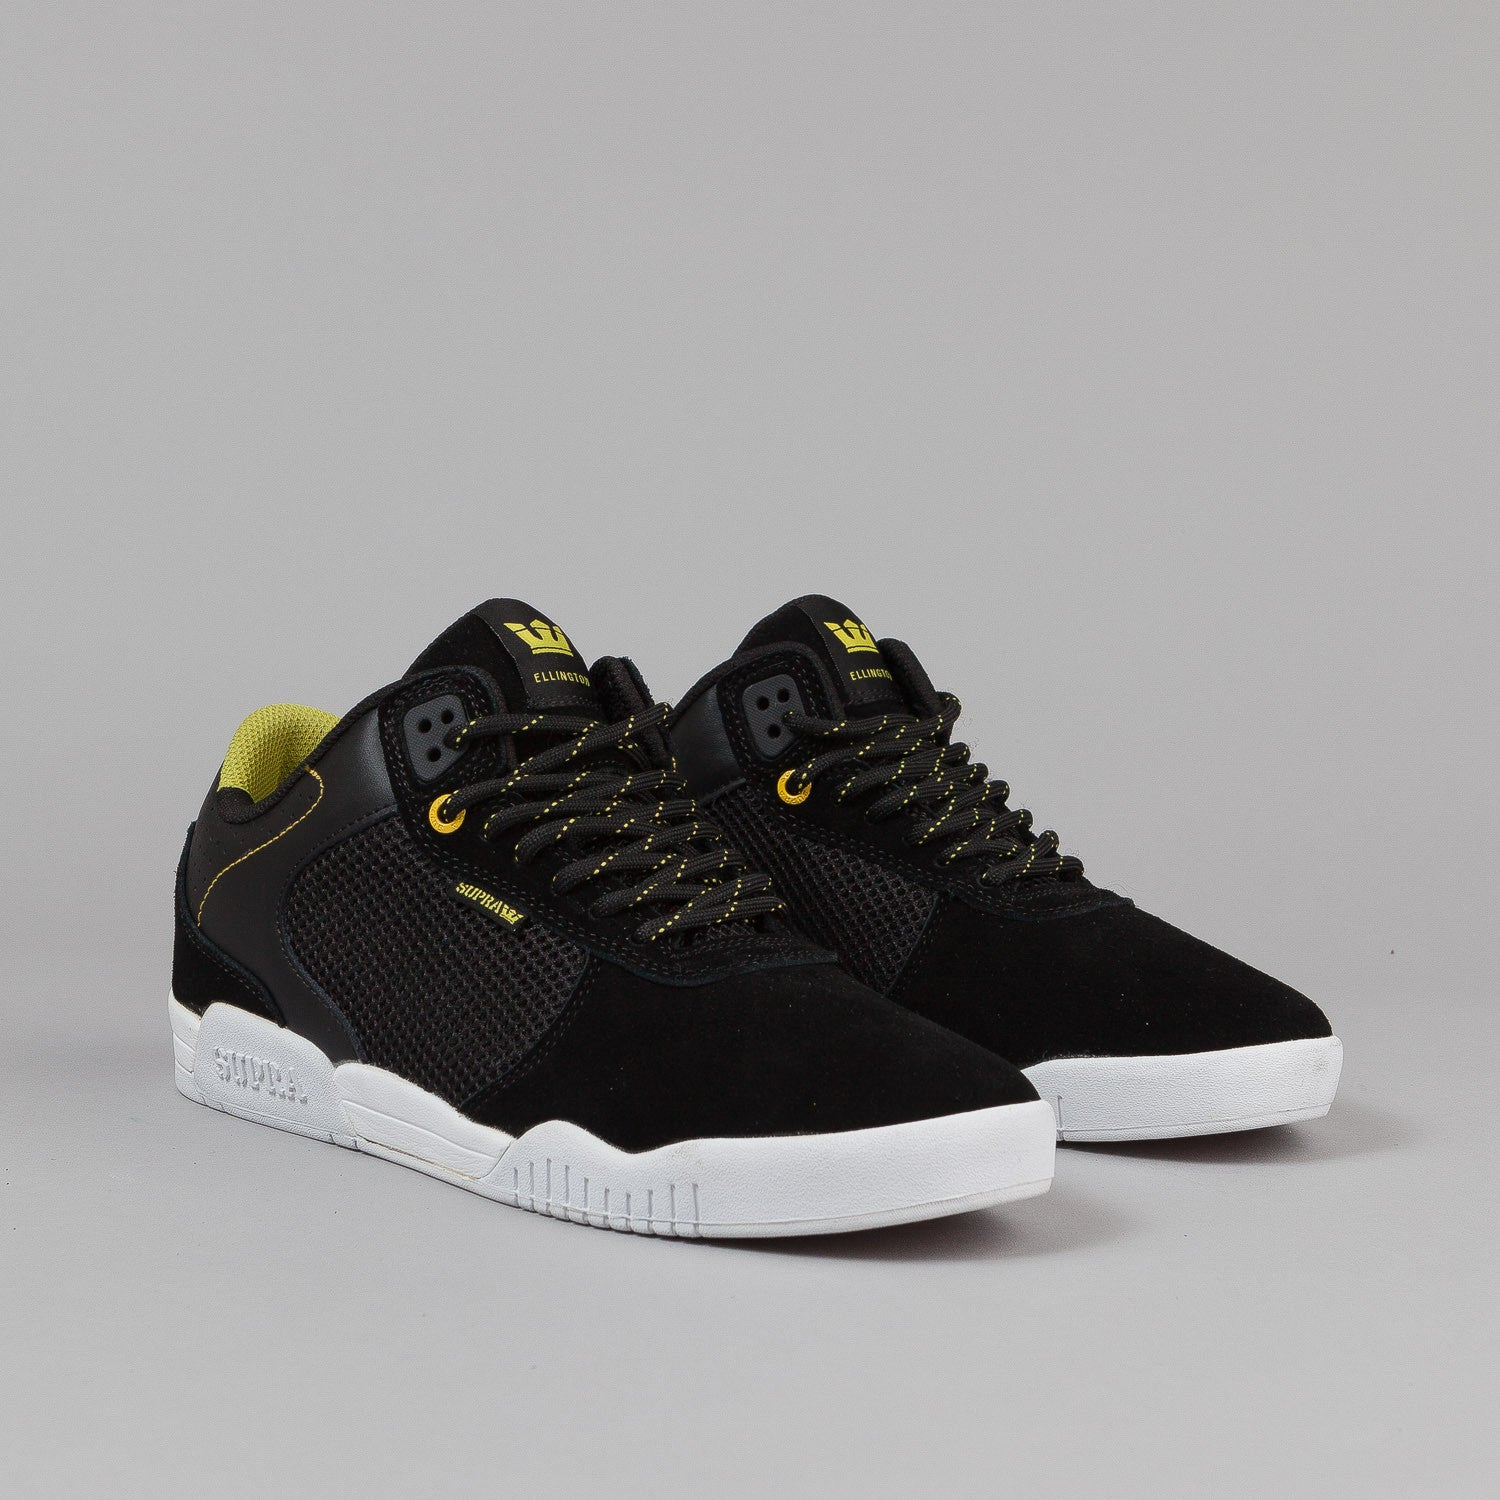 Supra Ellington Shoes - Black / Neon / White